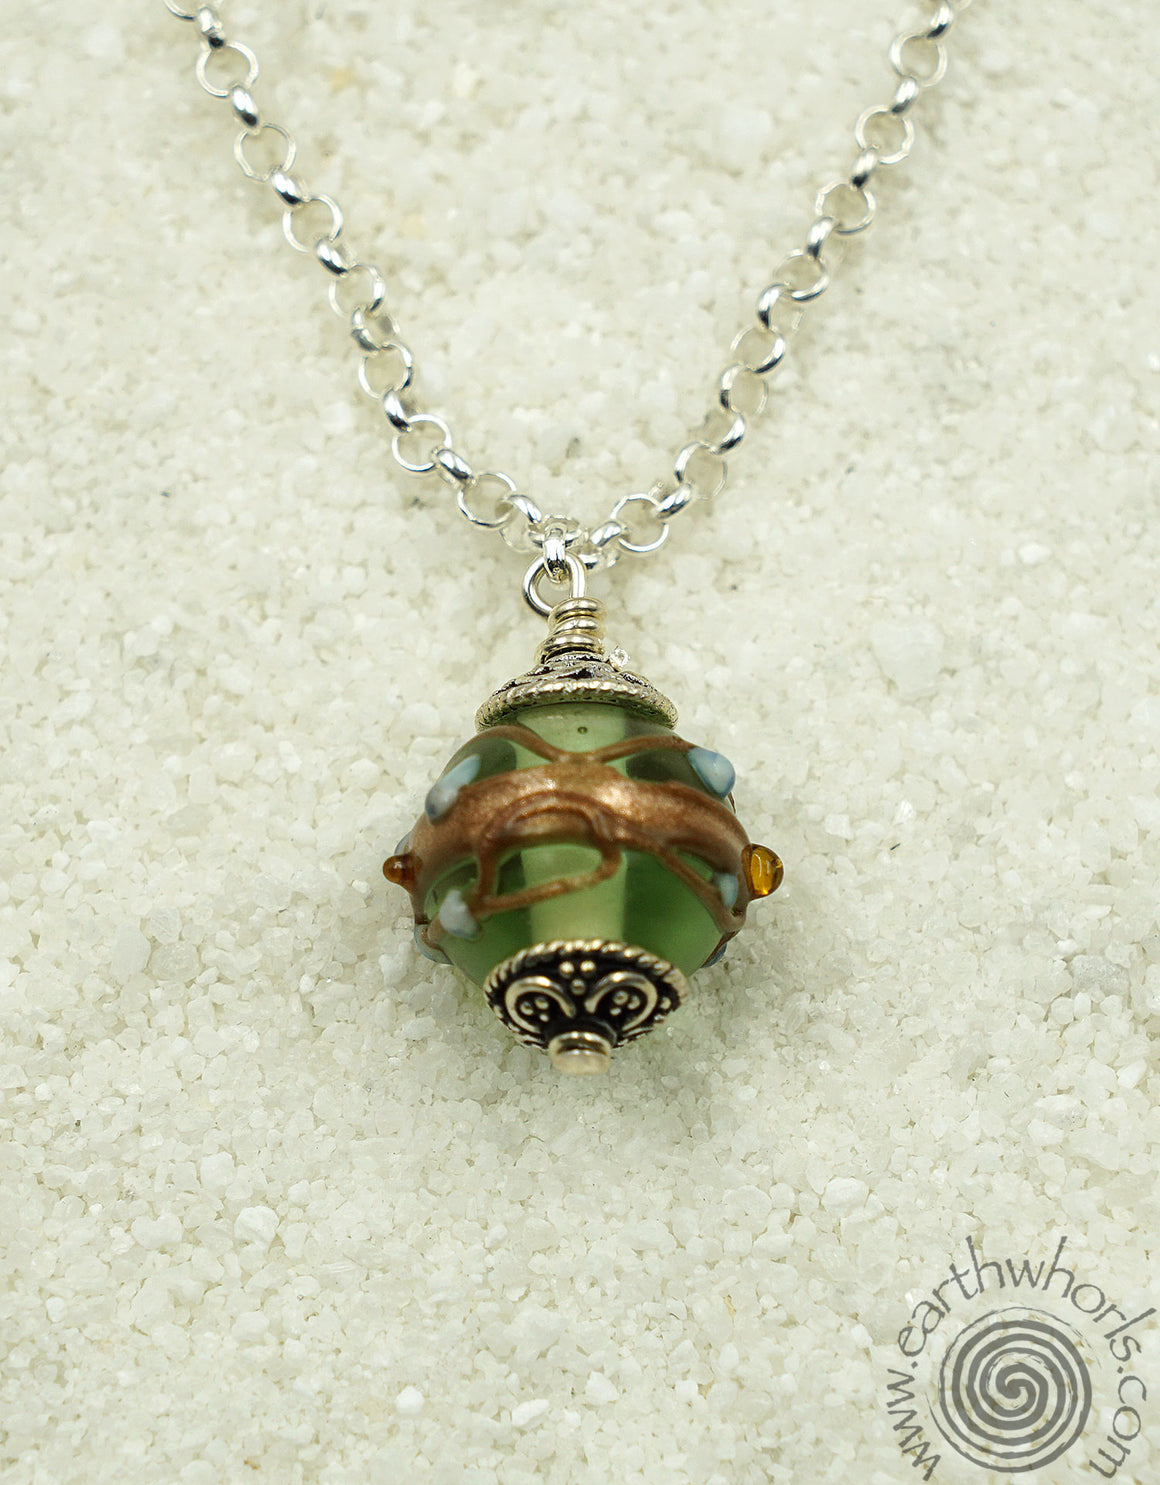 Handmade Glass & Sterling Silver Delicate Pendant Necklace - EarthWhorls, LLC